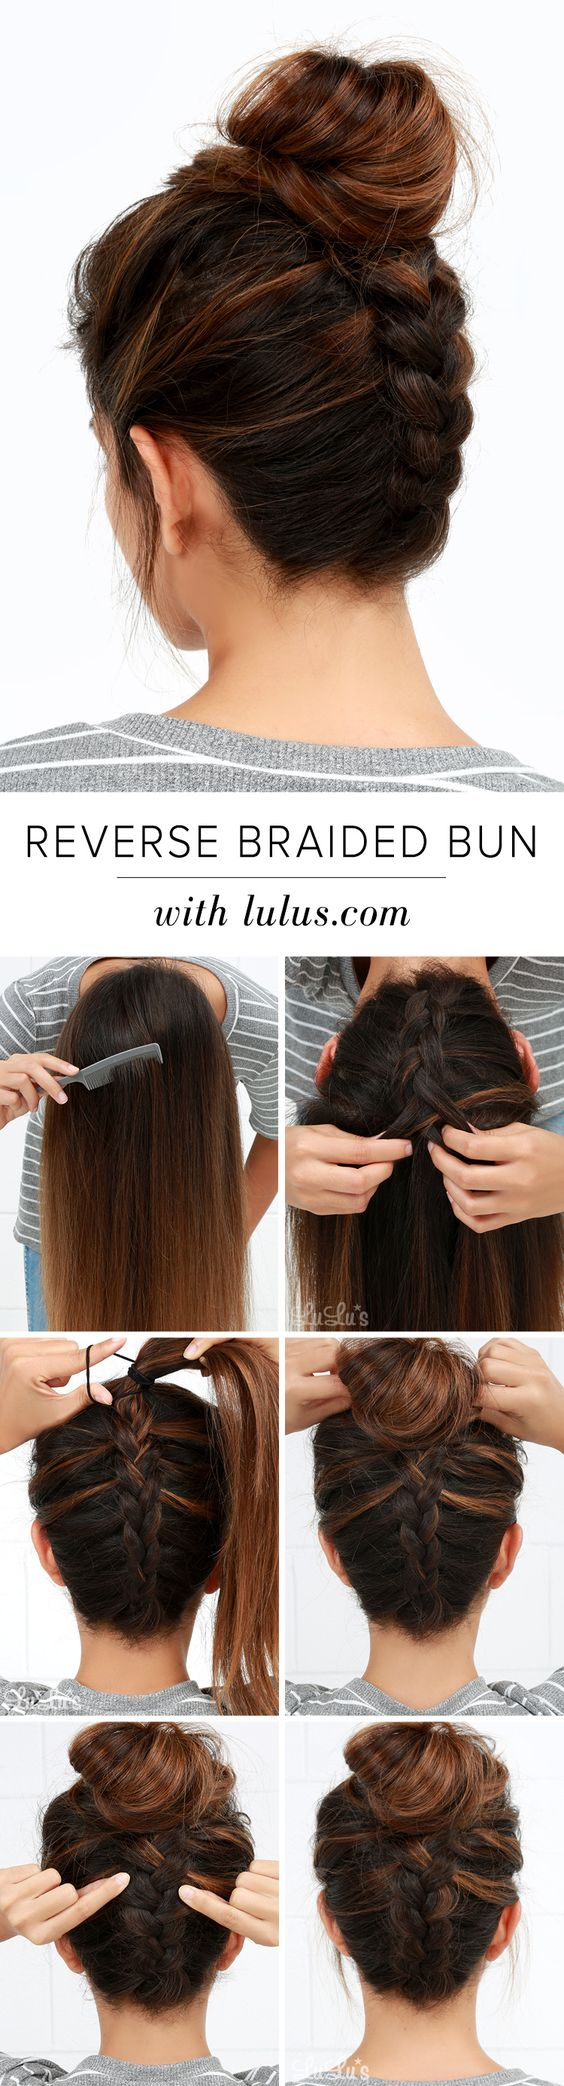 DIY Reverse Braided Bun Hair Tutorial: